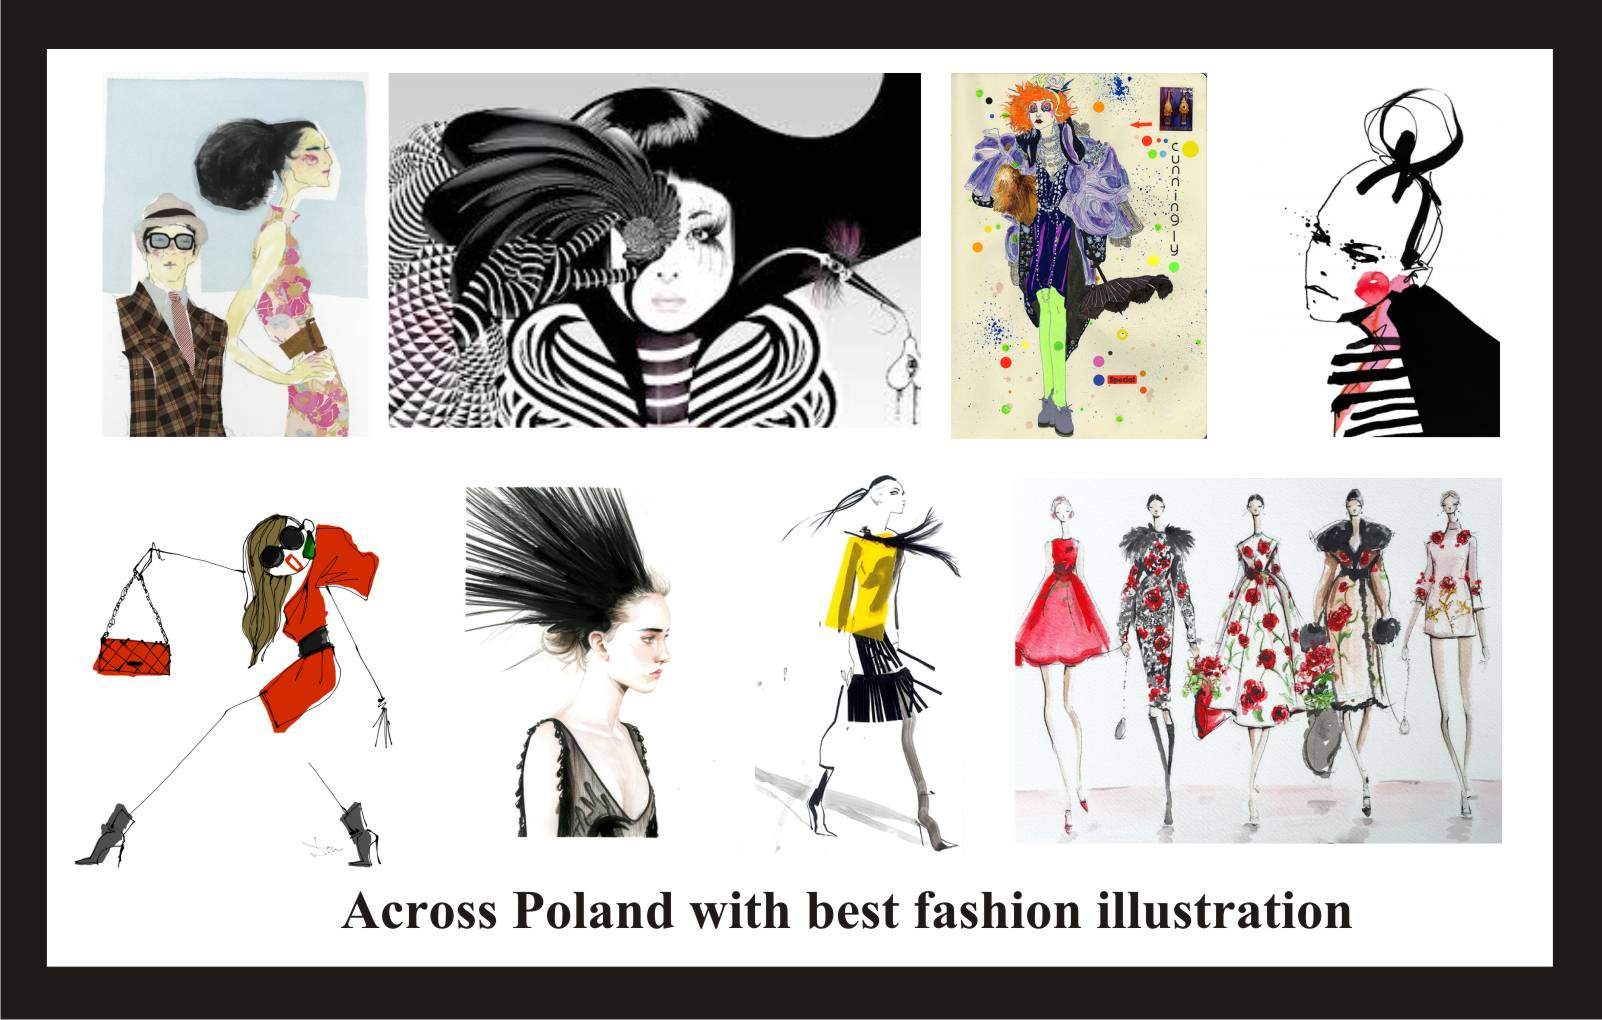 across-poland-fashion-illustration-1